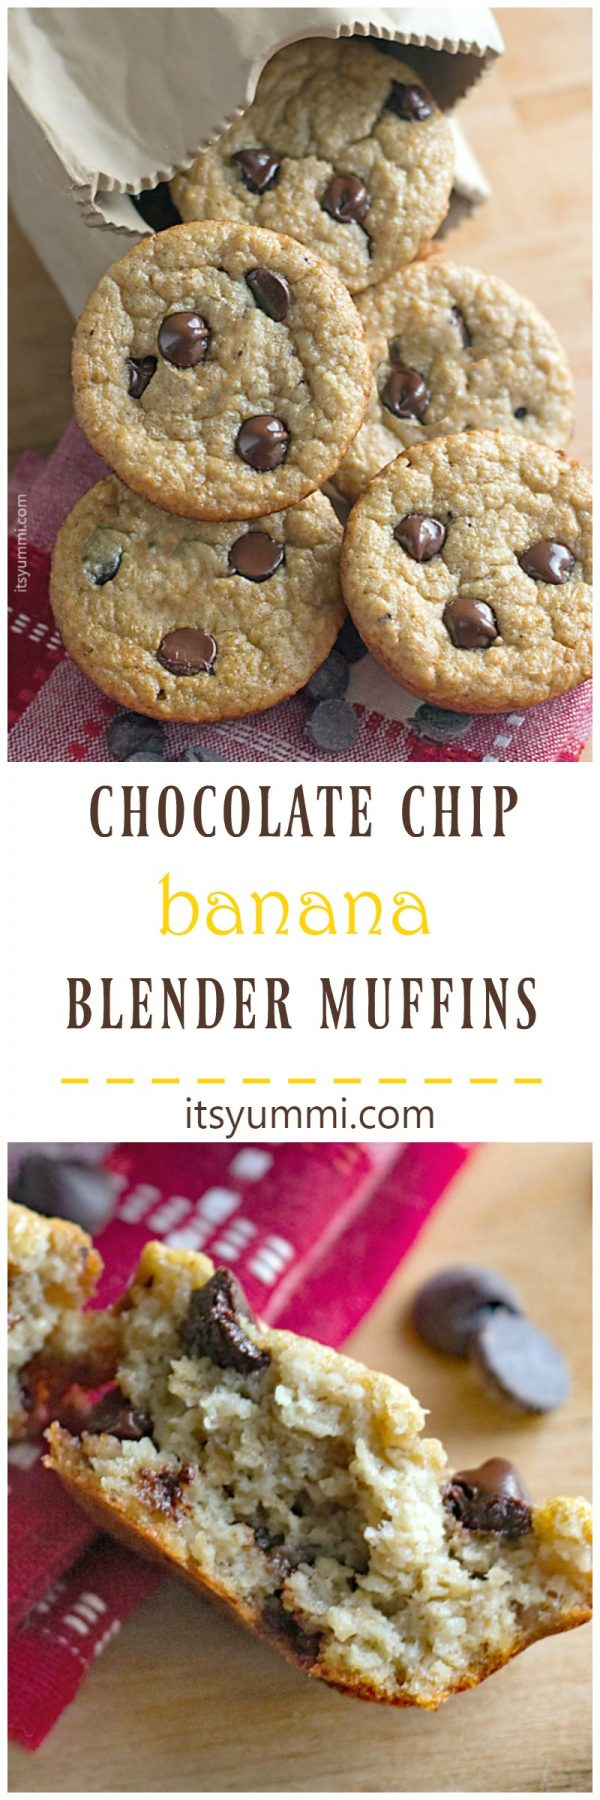 Gluten Free Chocolate Chip Banana Blender Muffins - I love these quick bread muffins! The batter is made in a blender, so there's less mess, and they bake up in about 15 minutes. - Recipe on itsyummi.com